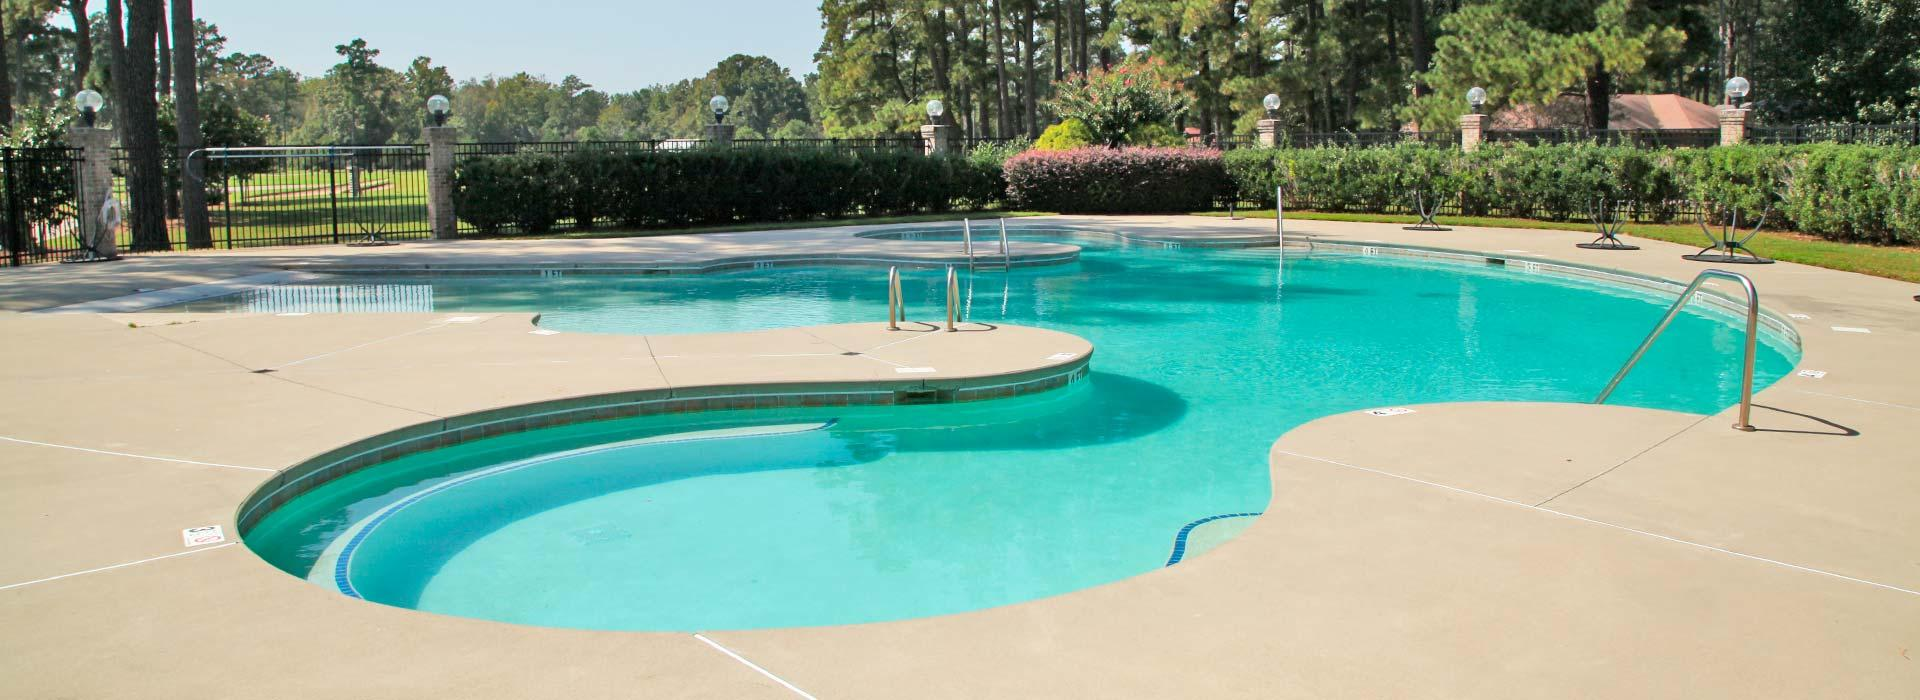 Outdoor poolat YMCA of the Pines golf course in Elizabeth City, NC